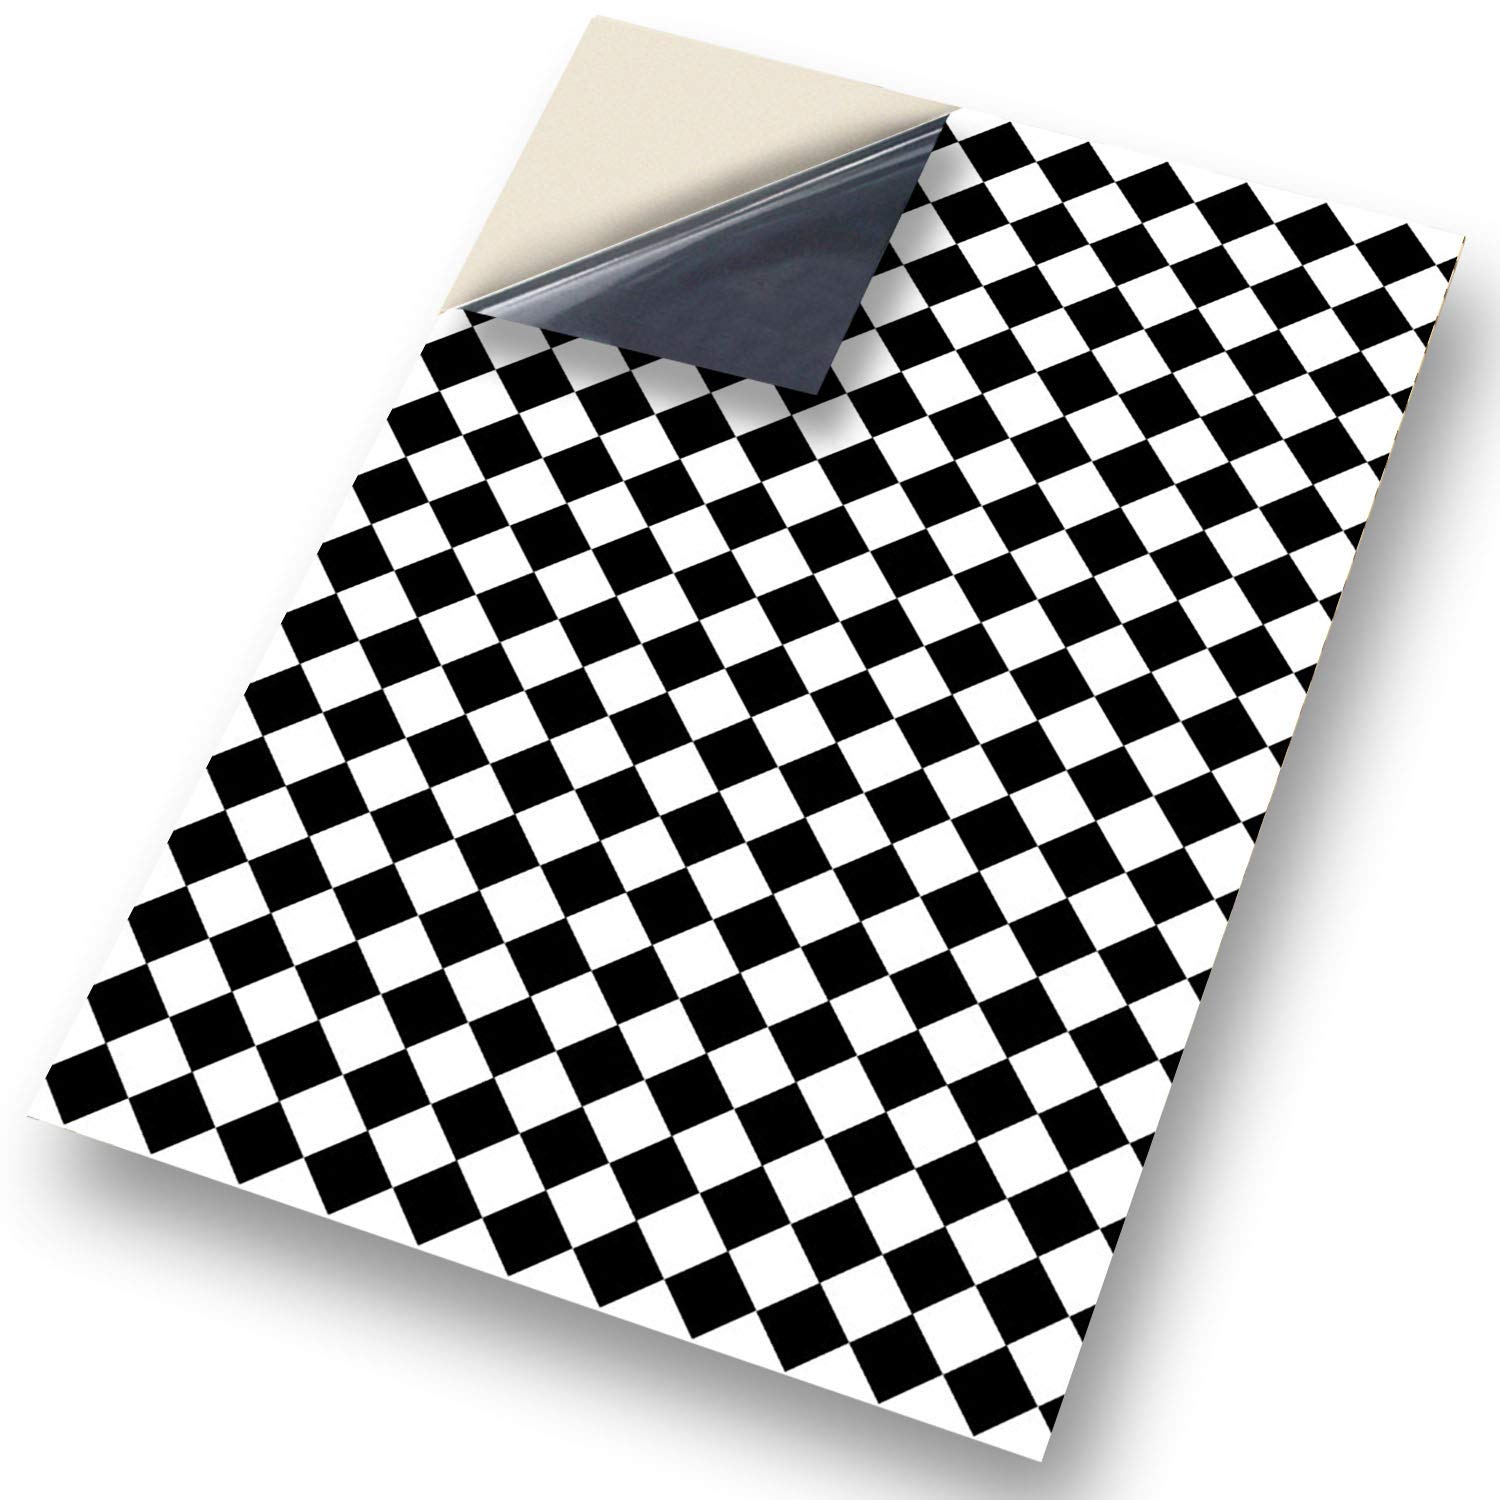 """No 43 Floor Black Diamond: NEW SELF ADHESIVE Dolls House Wallpaper : 1/12th scale Sheet Size : 12. 1/12"""" wide x 8.3/4"""" high (318mm x 225mm) Superior """"Non see through"""" Semi Matt Vinyl Coverings that can be applied instantly over exis"""